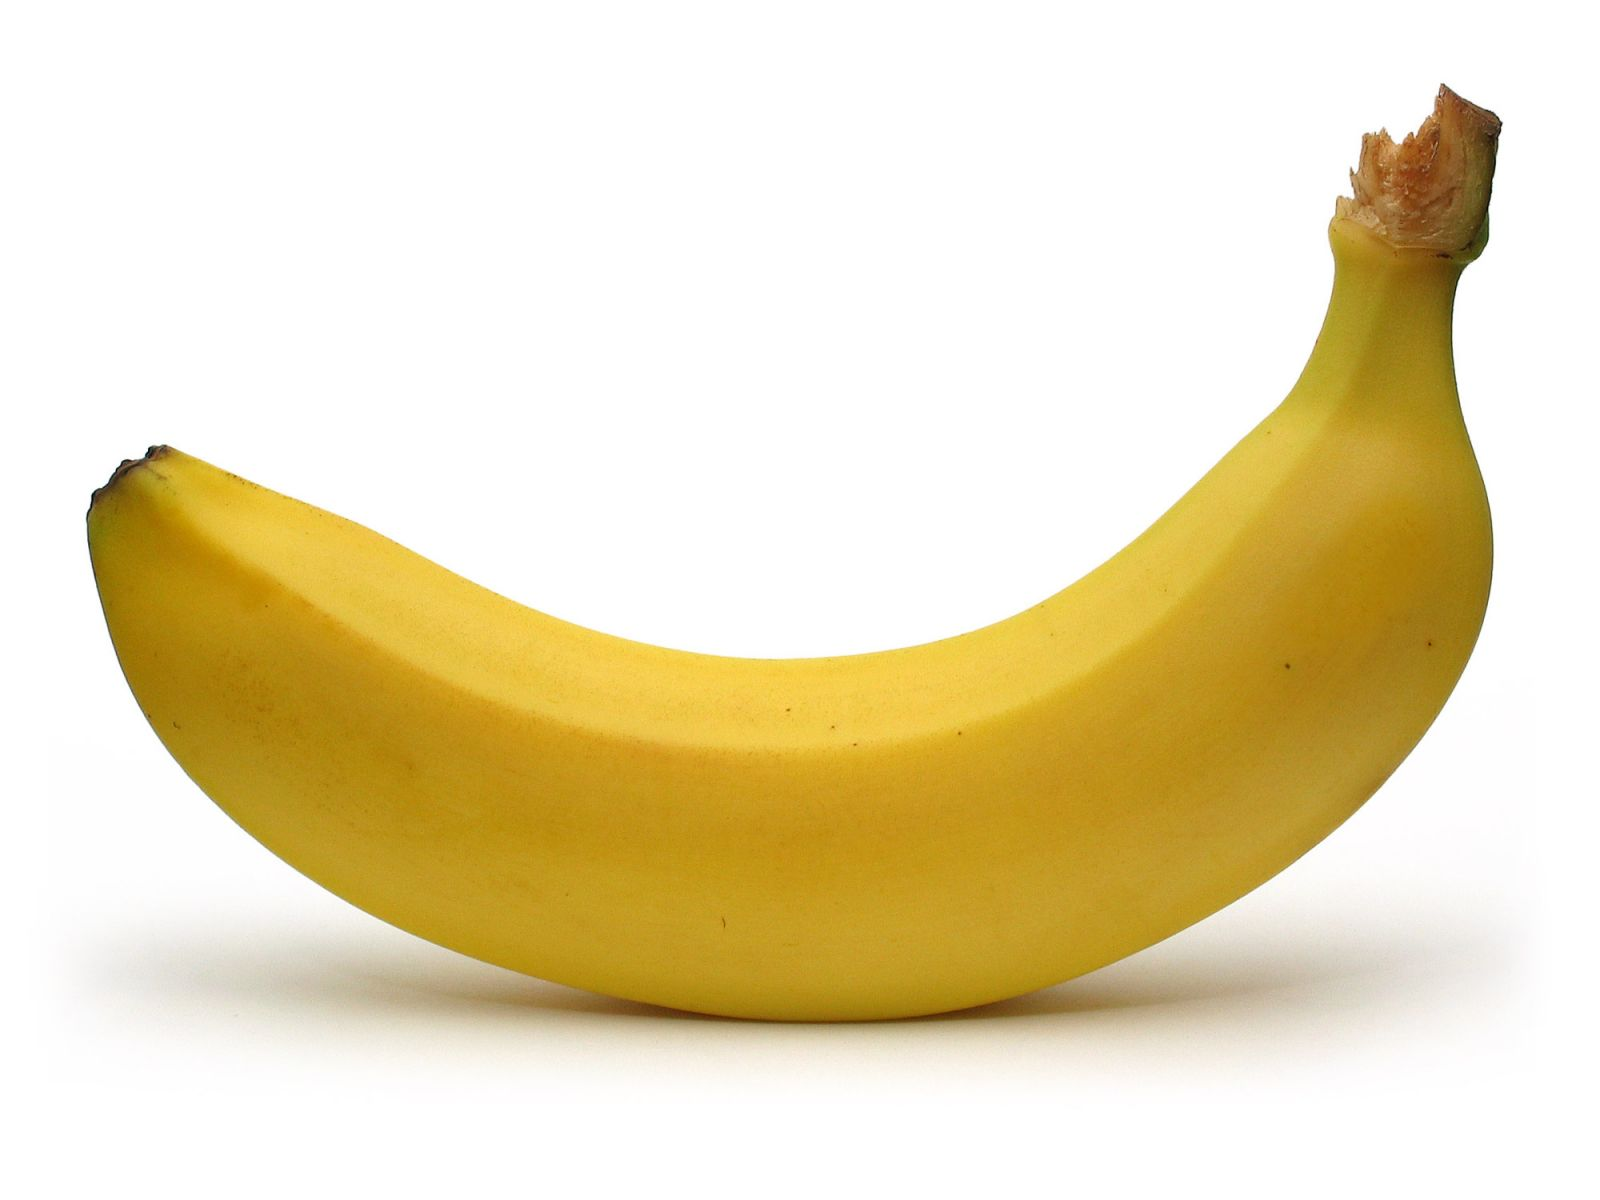 Banana For Better Sexual Life